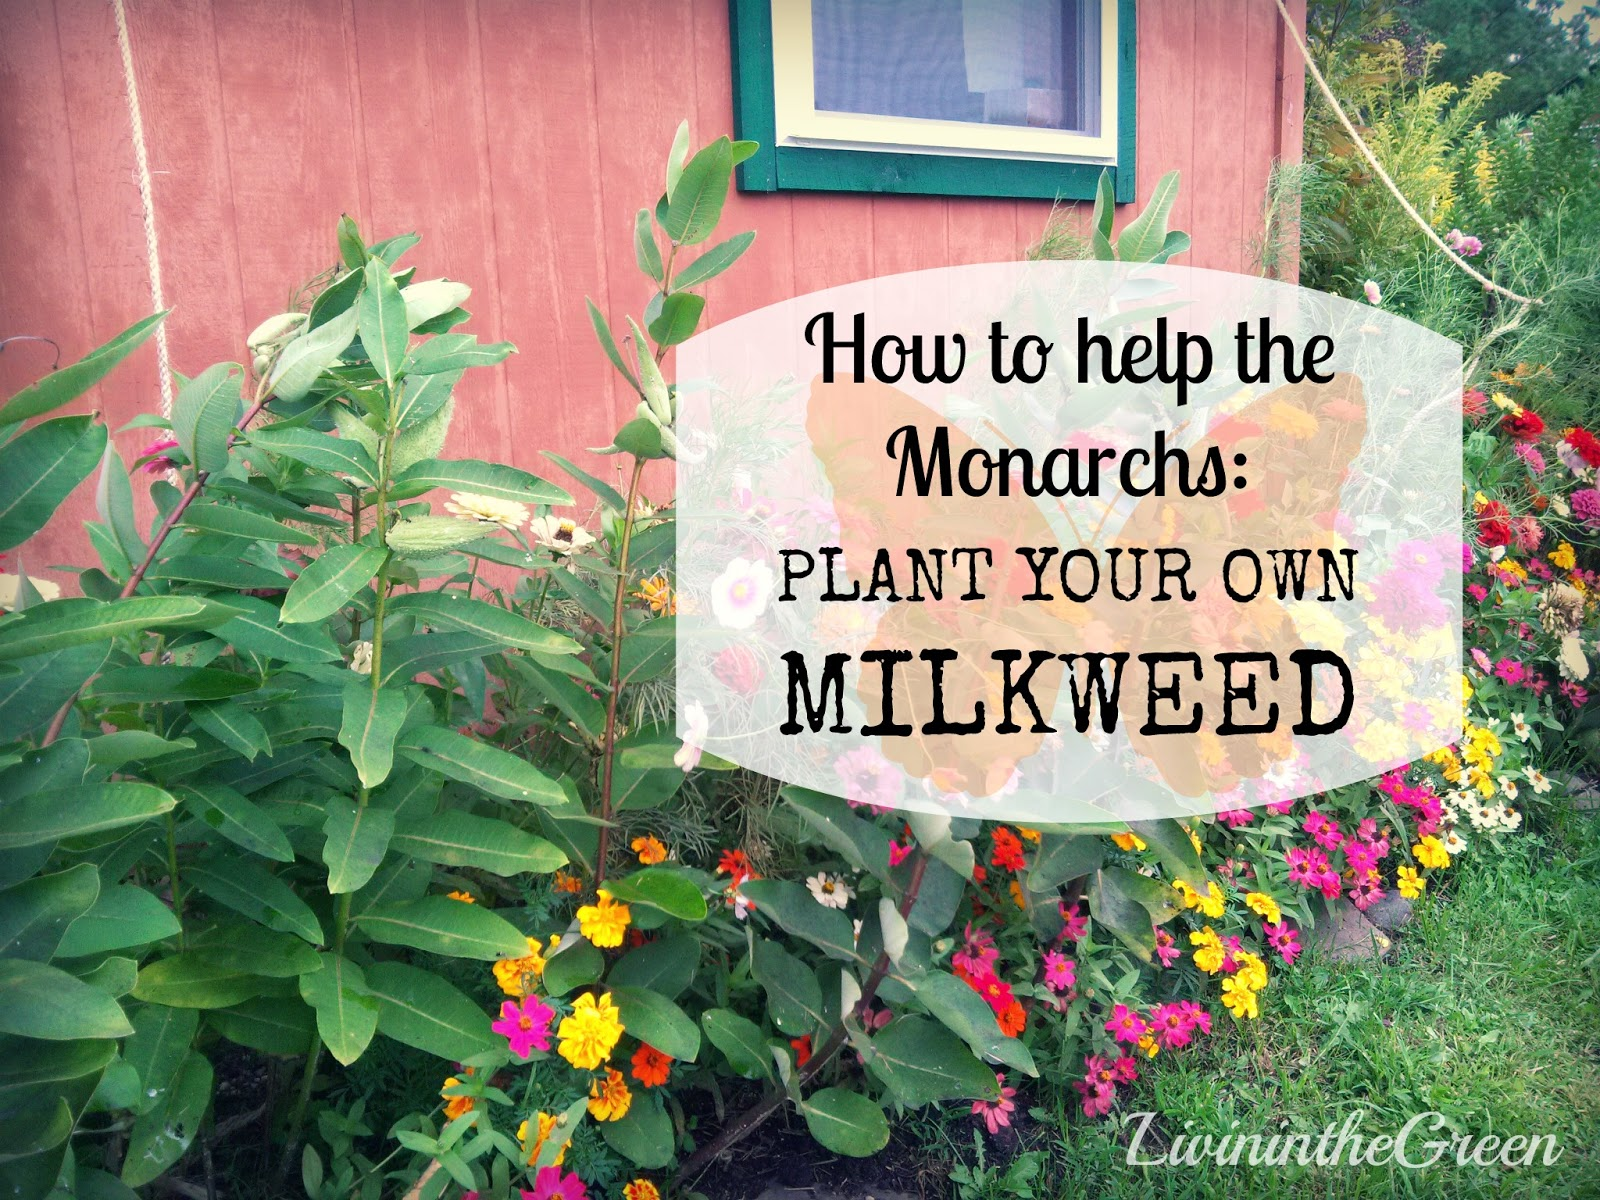 Helping Monarchs: Plant Your Own Milkweed